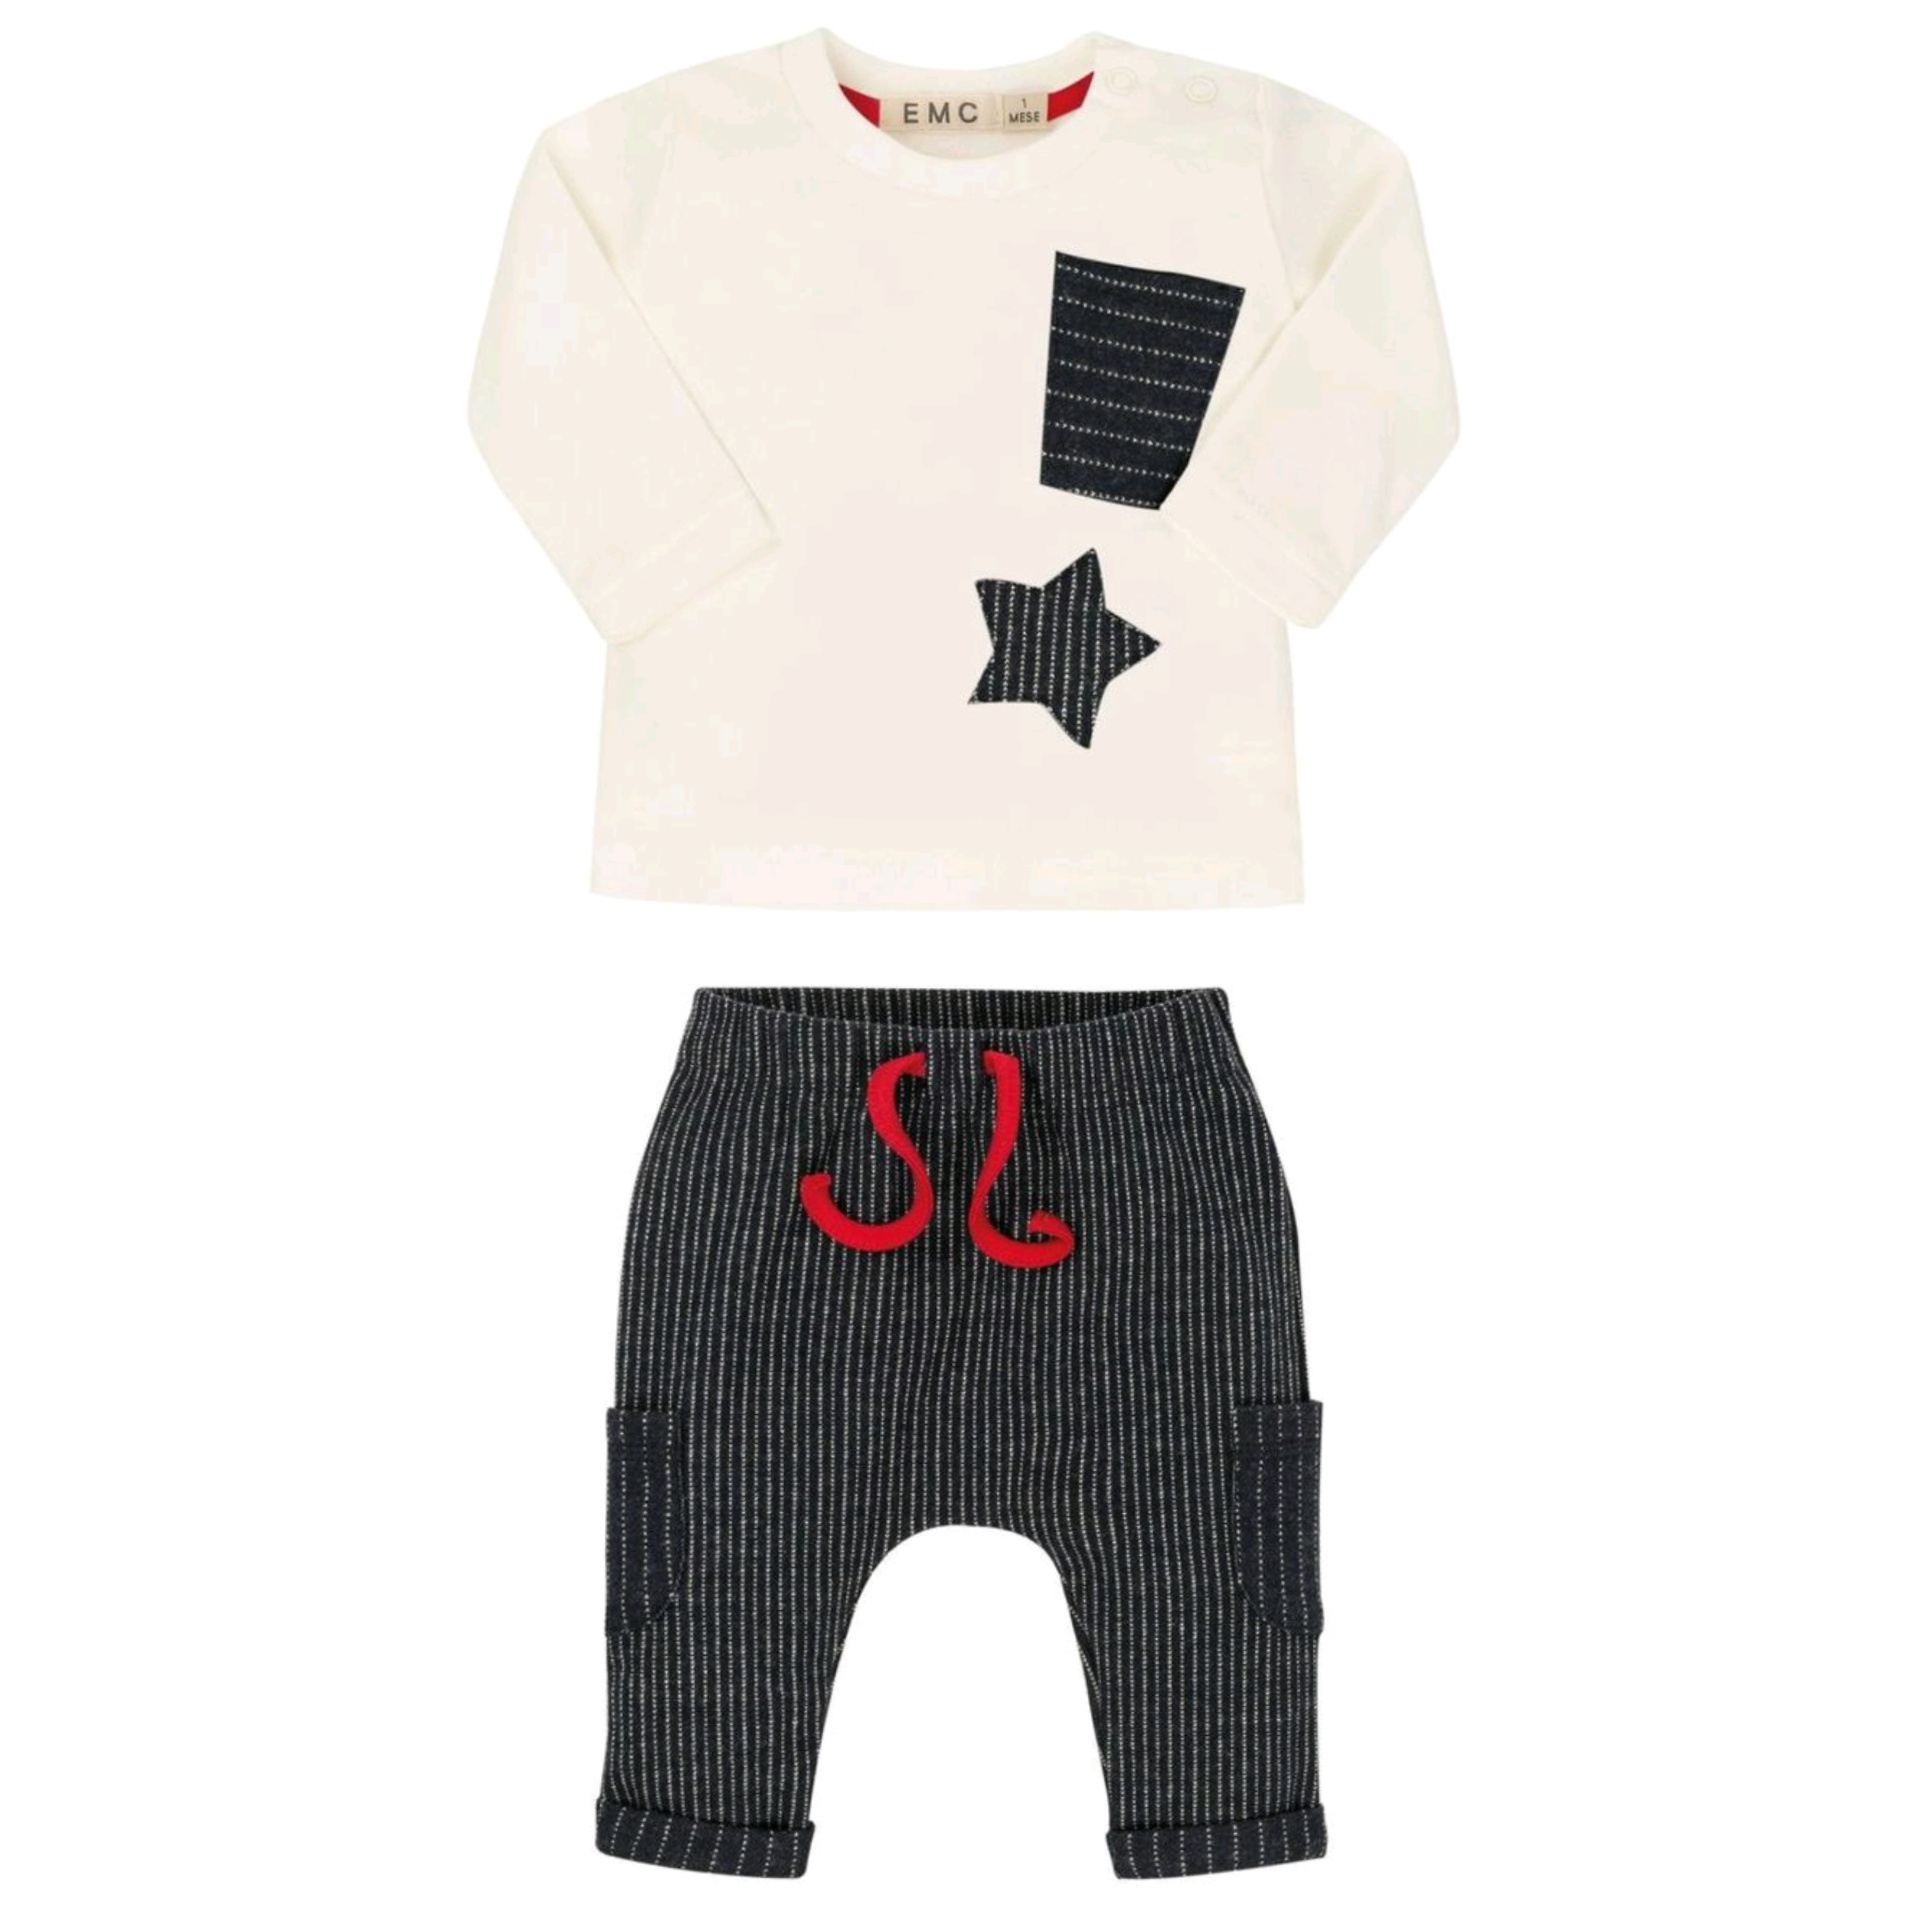 EMC EMC Boys Star Two Piece Set